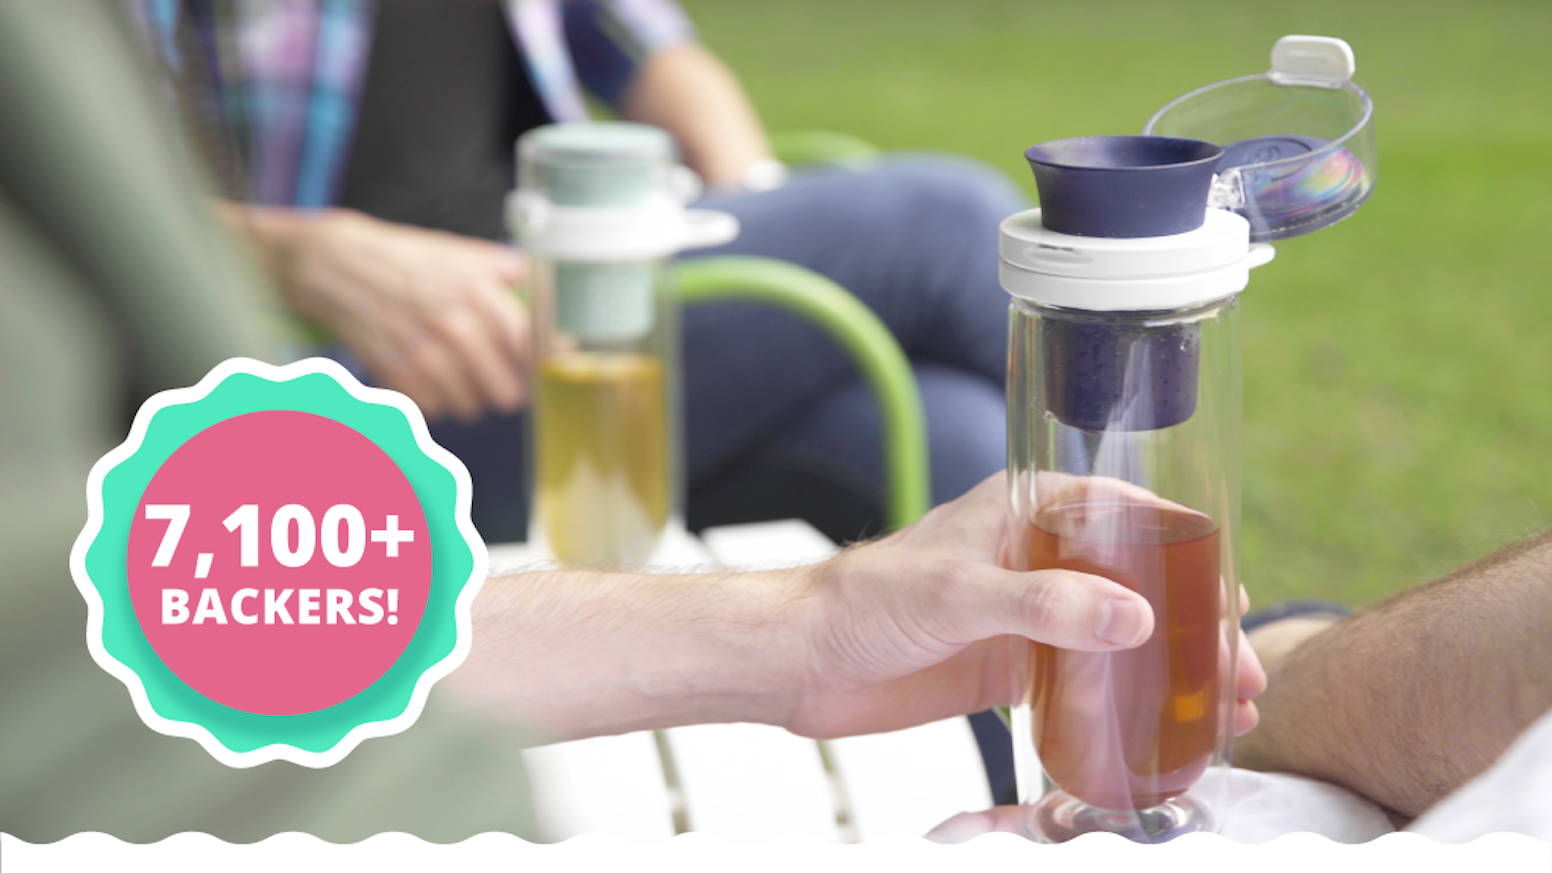 Effortlessly brew and drink delicious loose-leaf tea at home or on-the-go with Mosi Tea's patent pending, multisensory tea infuser.